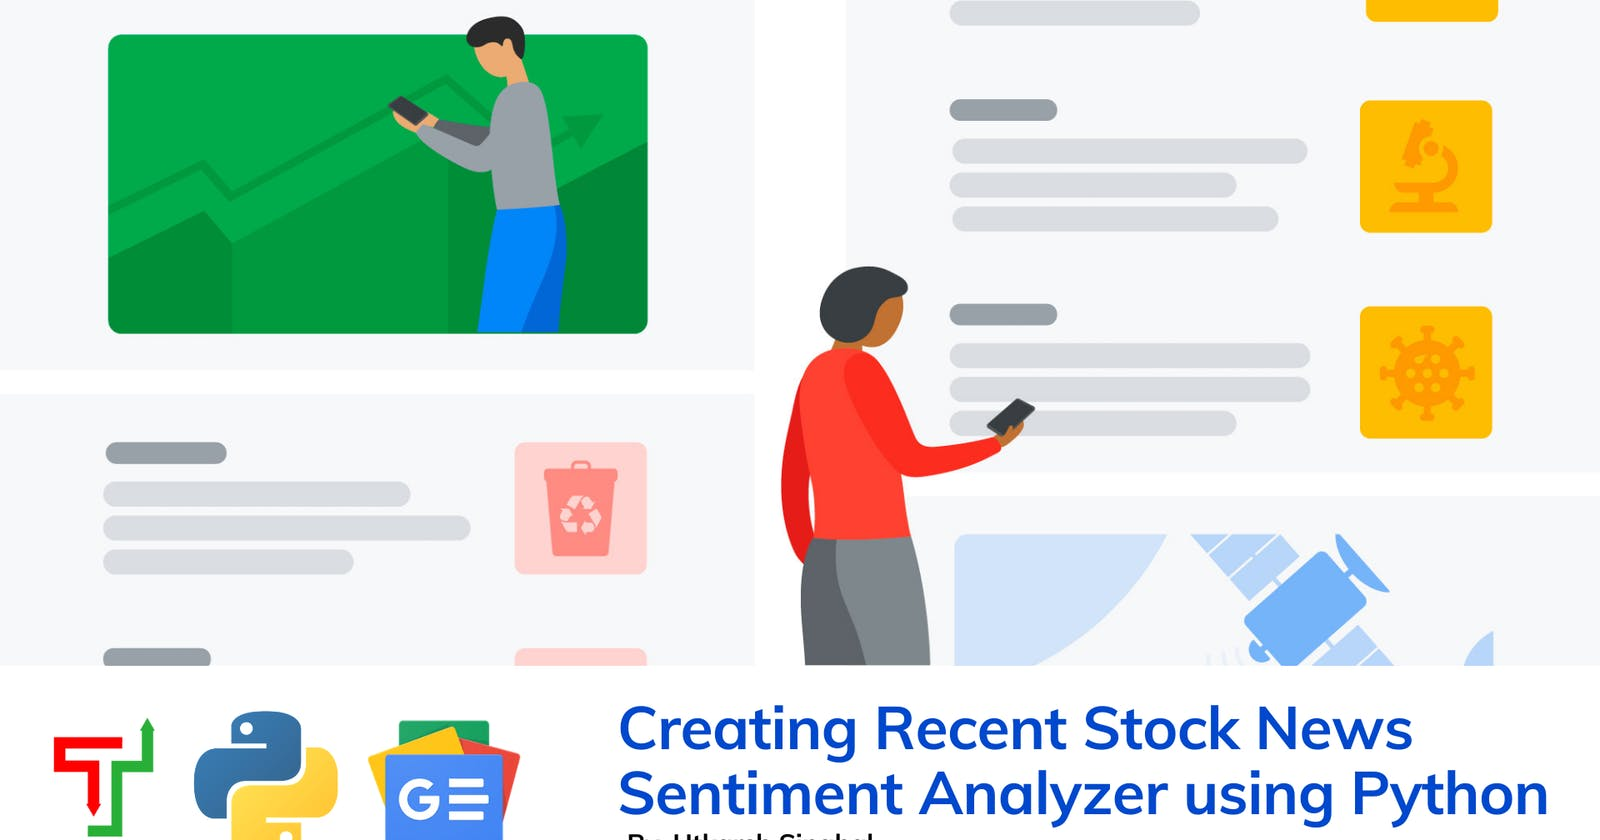 Creating Your Own Recent Stock News Sentiment Analyzer using Python